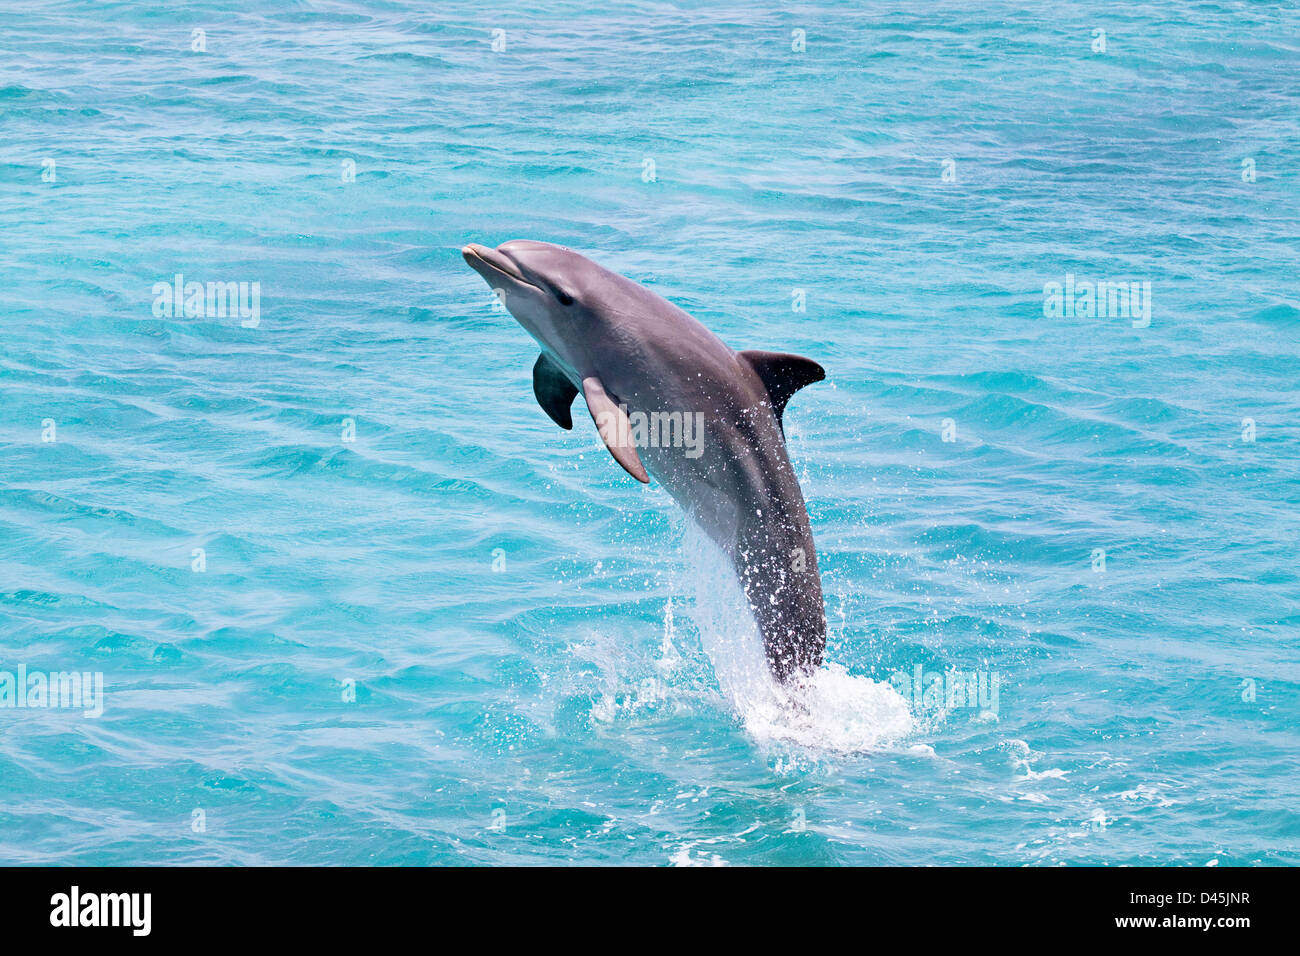 Atlantic Bottlenose Dolphin, Tursiops truncatus, leaps from the ocean off Curacao, Netherlands Antilles, Caribbean. - Stock Image